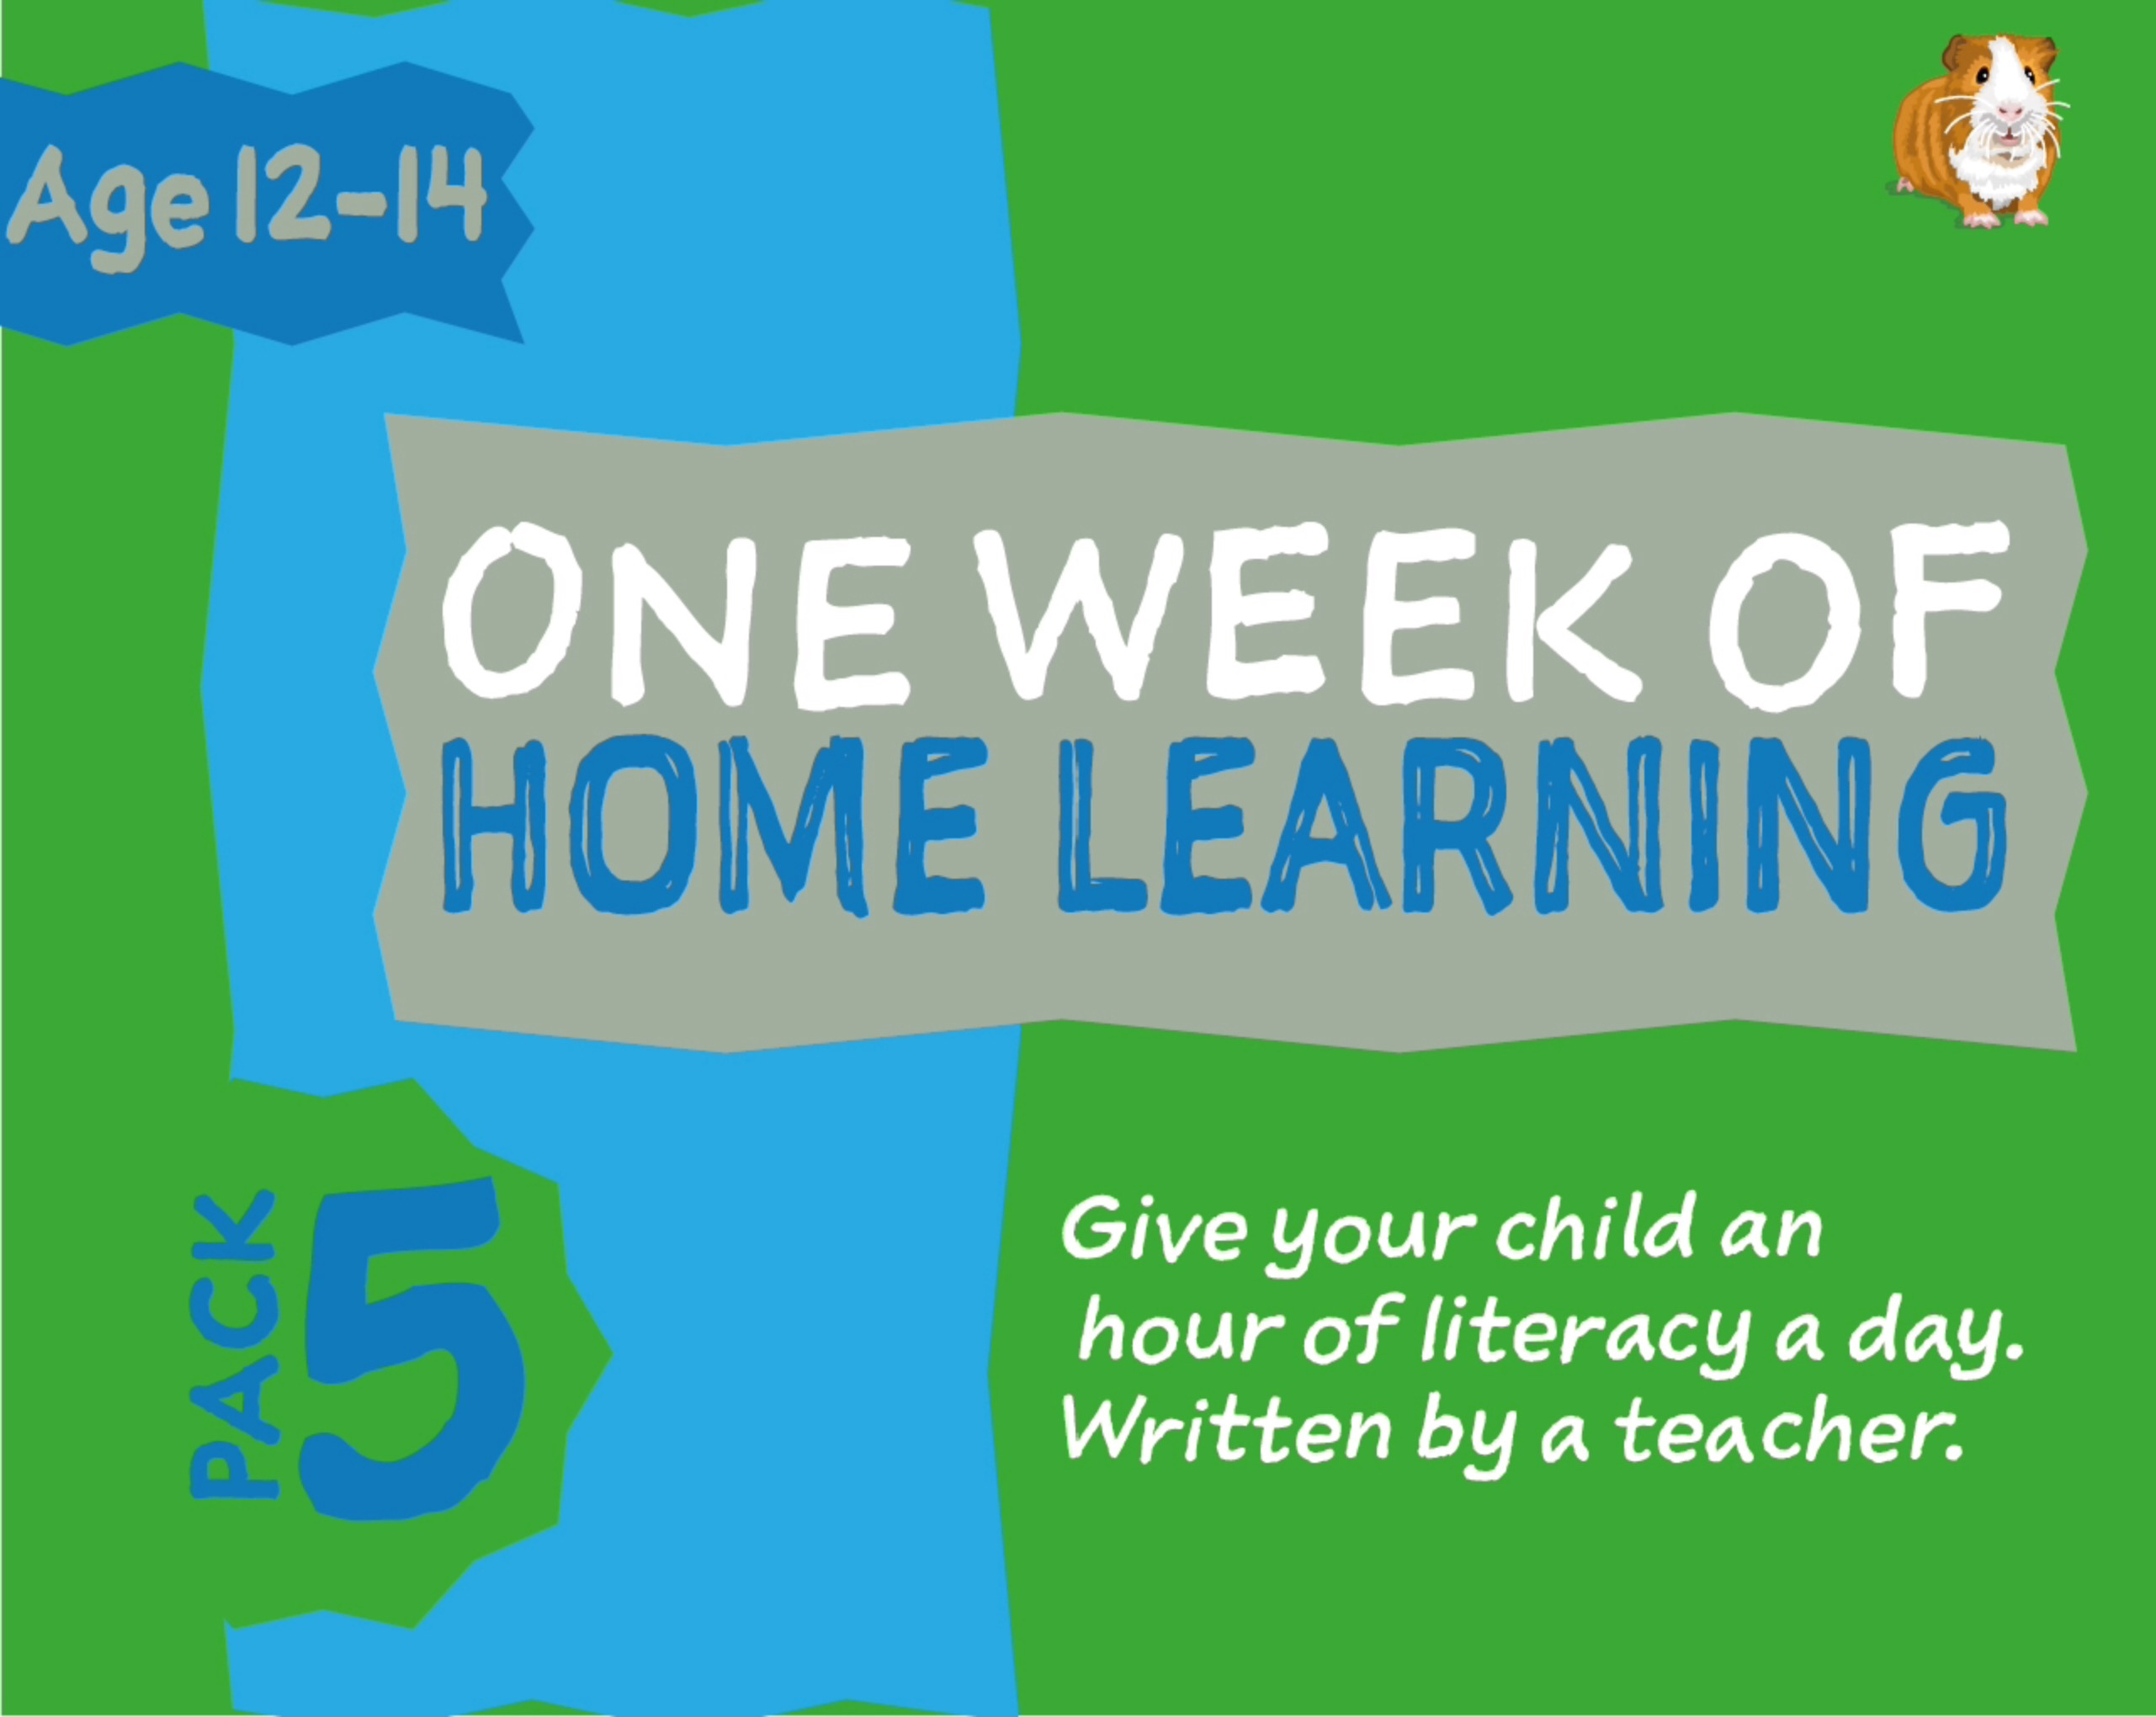 1 WEEK Literacy Distance Learning: Pack FIVE (age 12-14 years) Grades 6-8